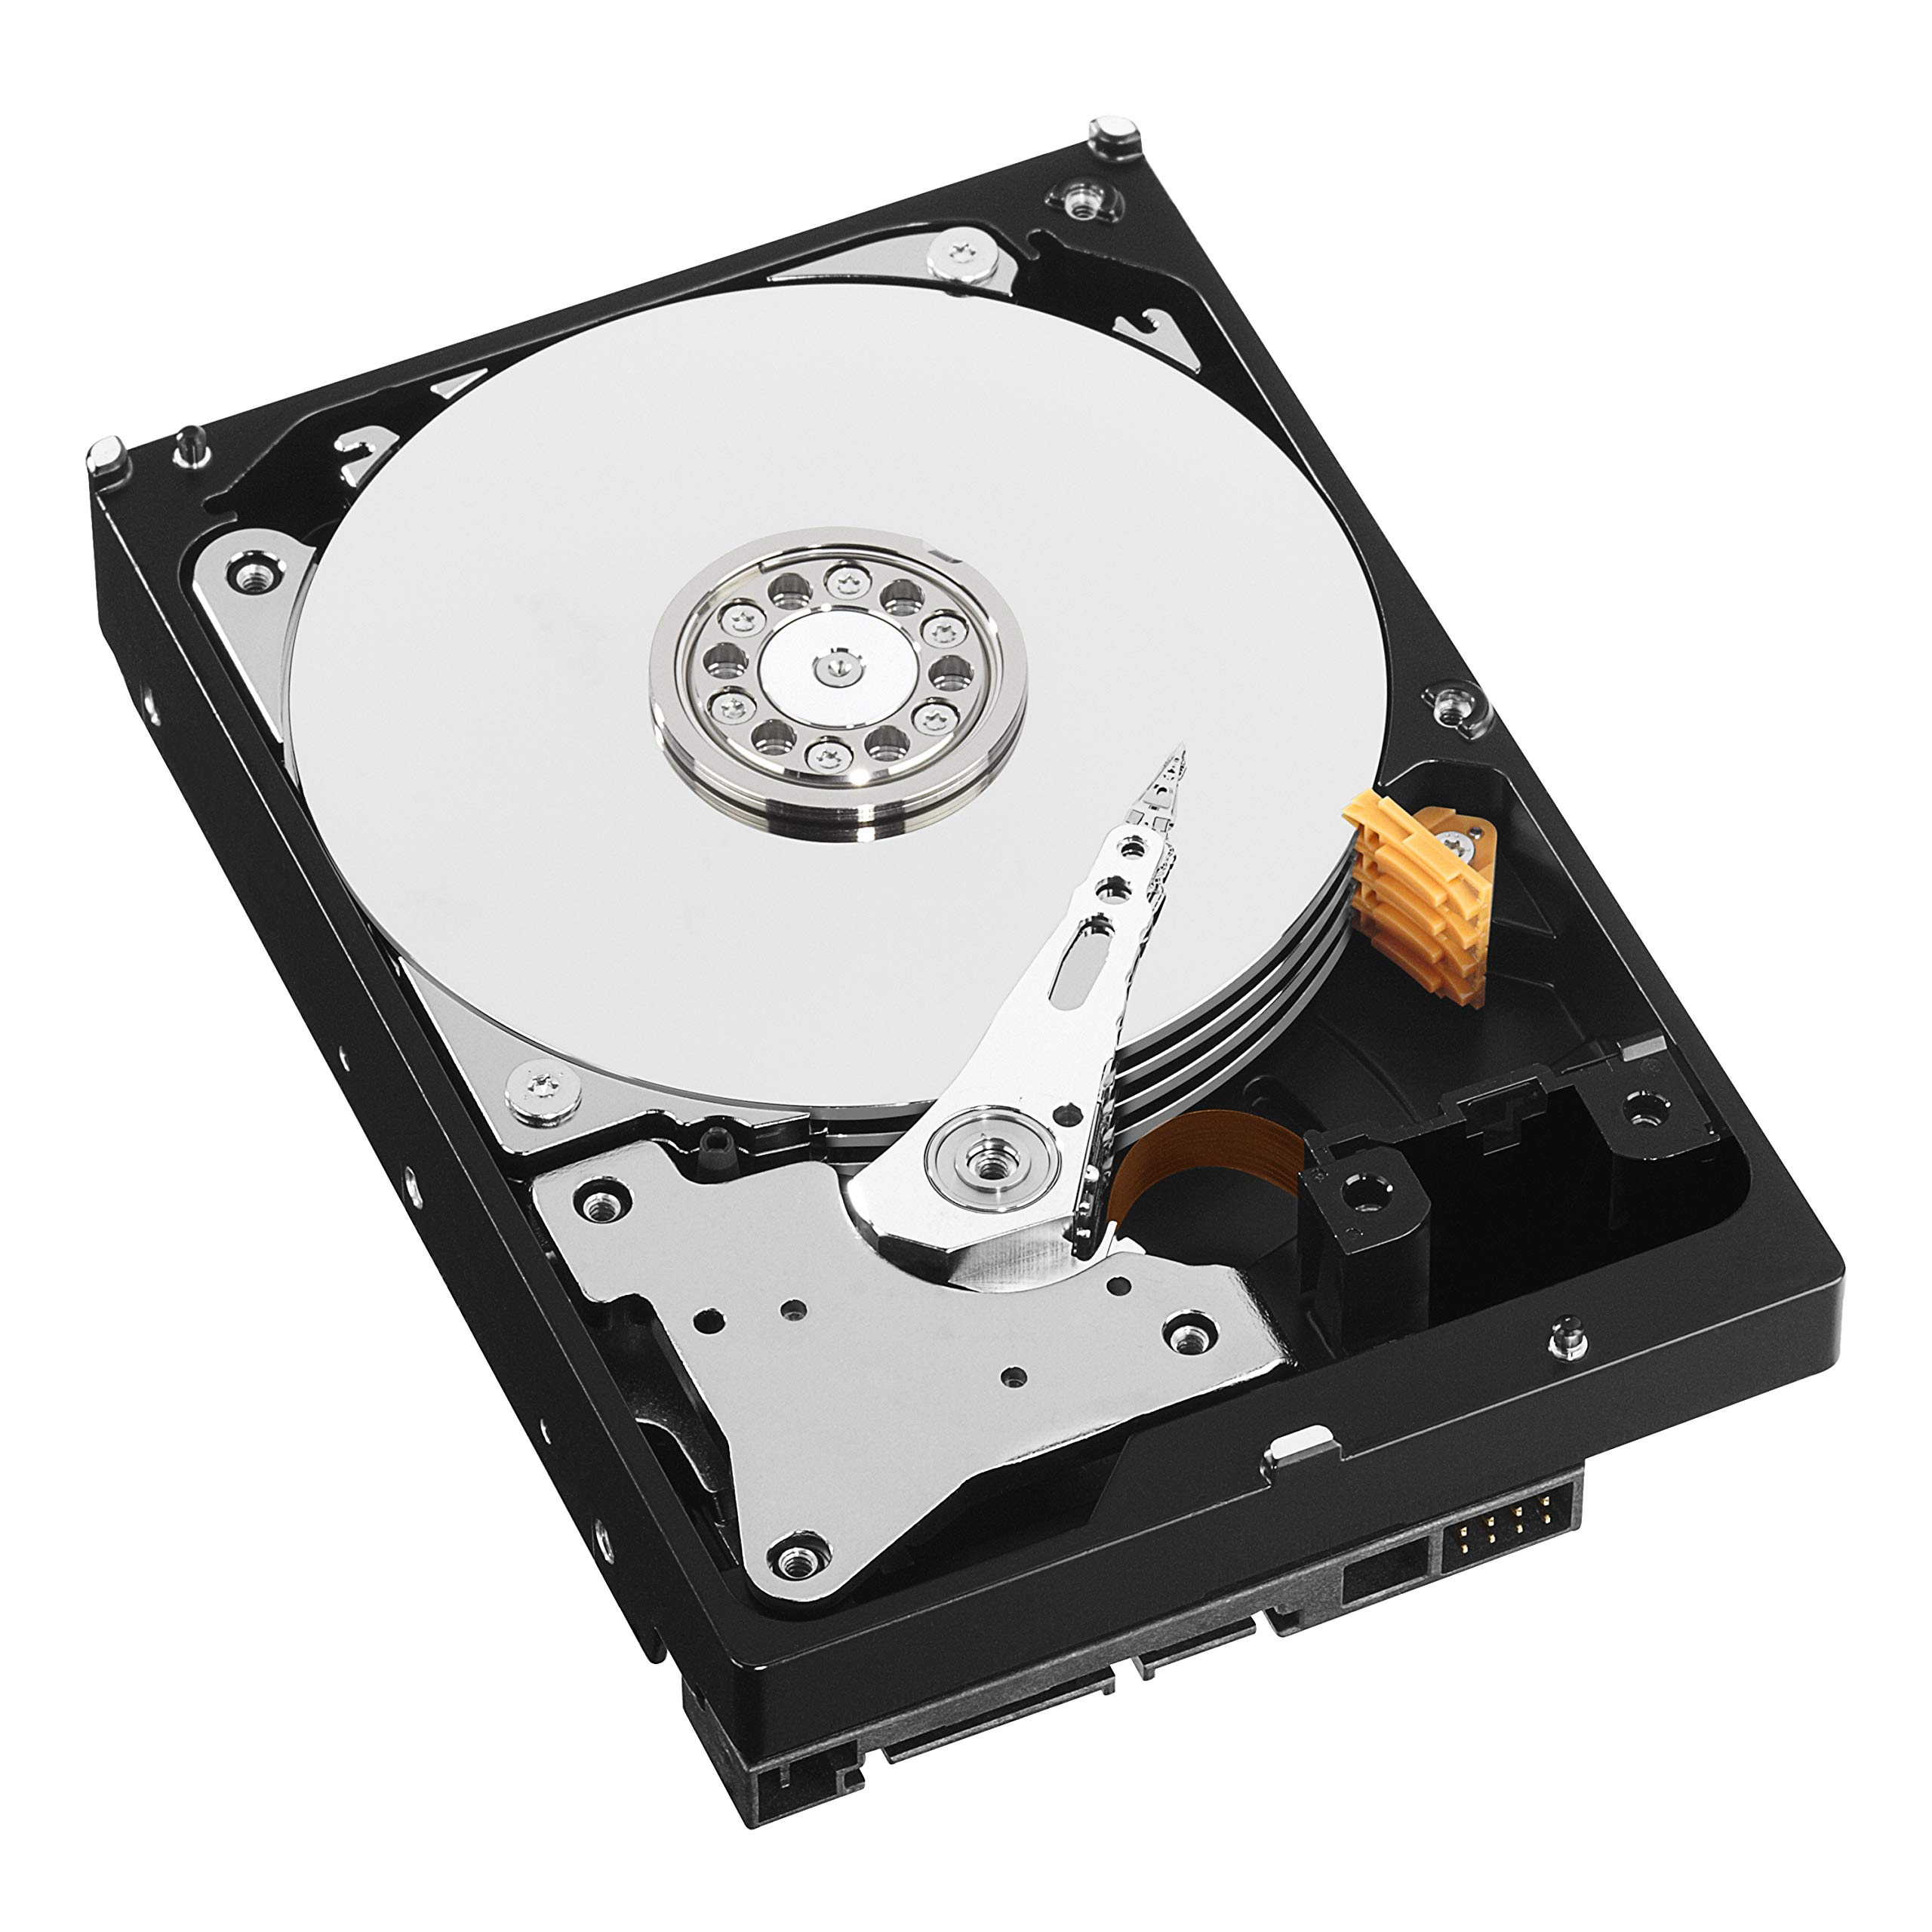 WD Red 6TB NAS Internal Hard Drive - 5400 RPM Class, SATA 6 GB/S, 256MB Cache, 3.5'' - WD60EFAX by Western Digital (Image #4)